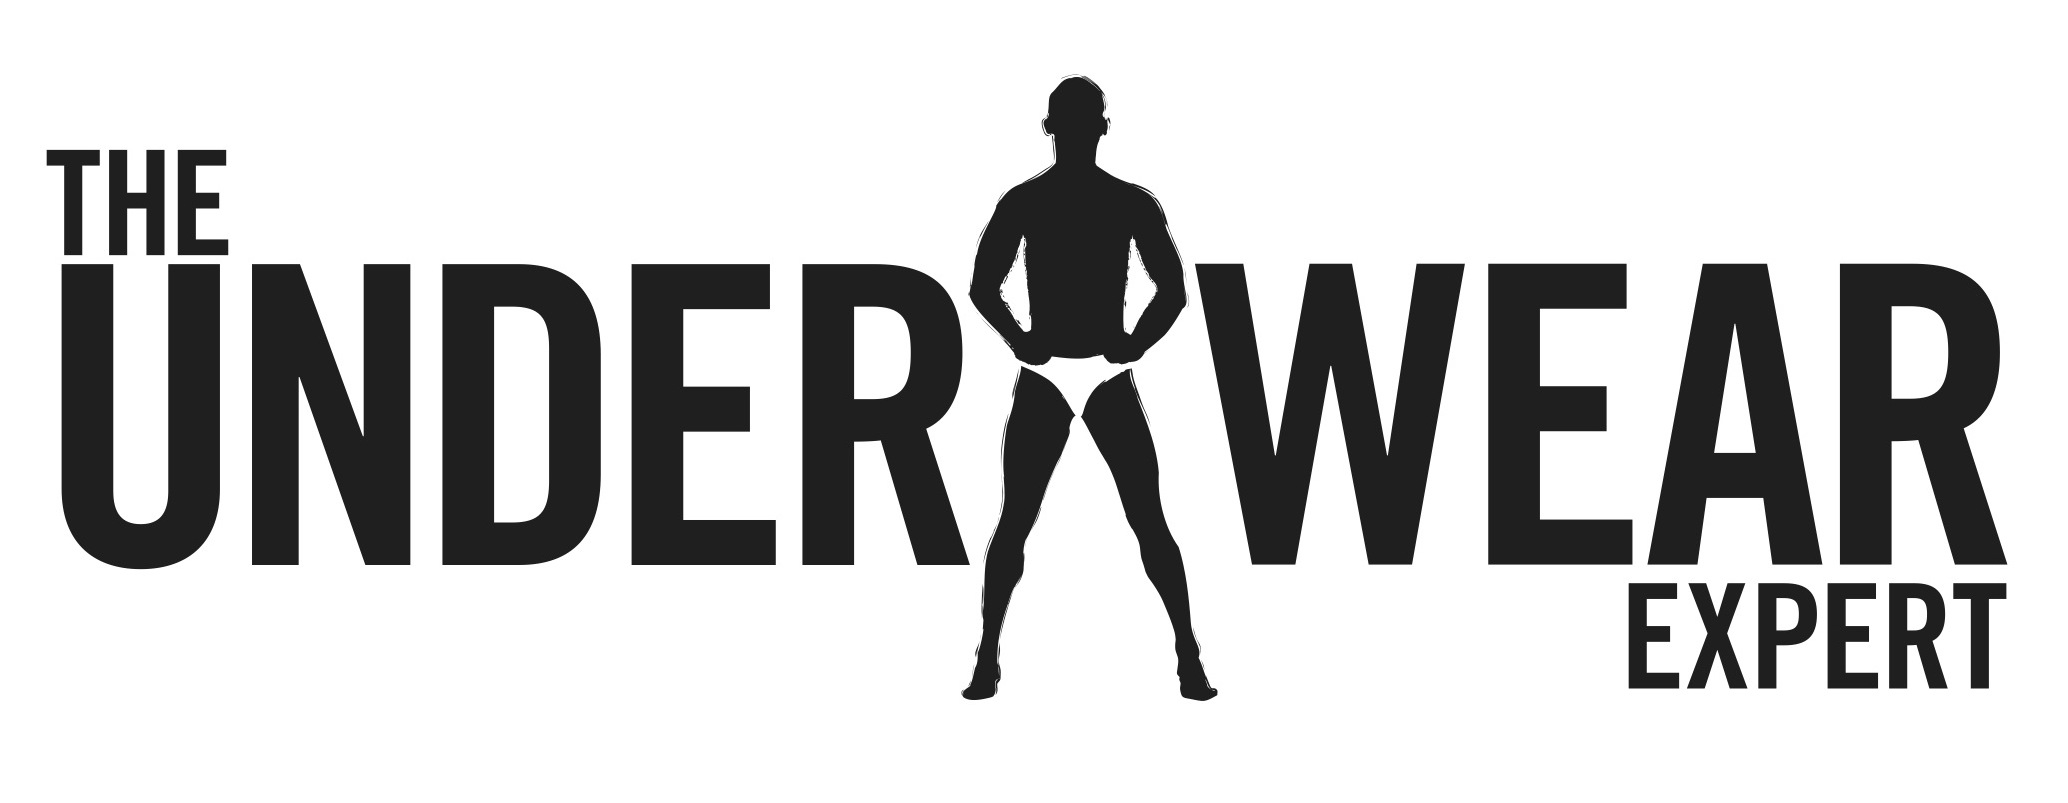 The Underwear Expert Trend Report: Athletic Inspired Men's Underwear